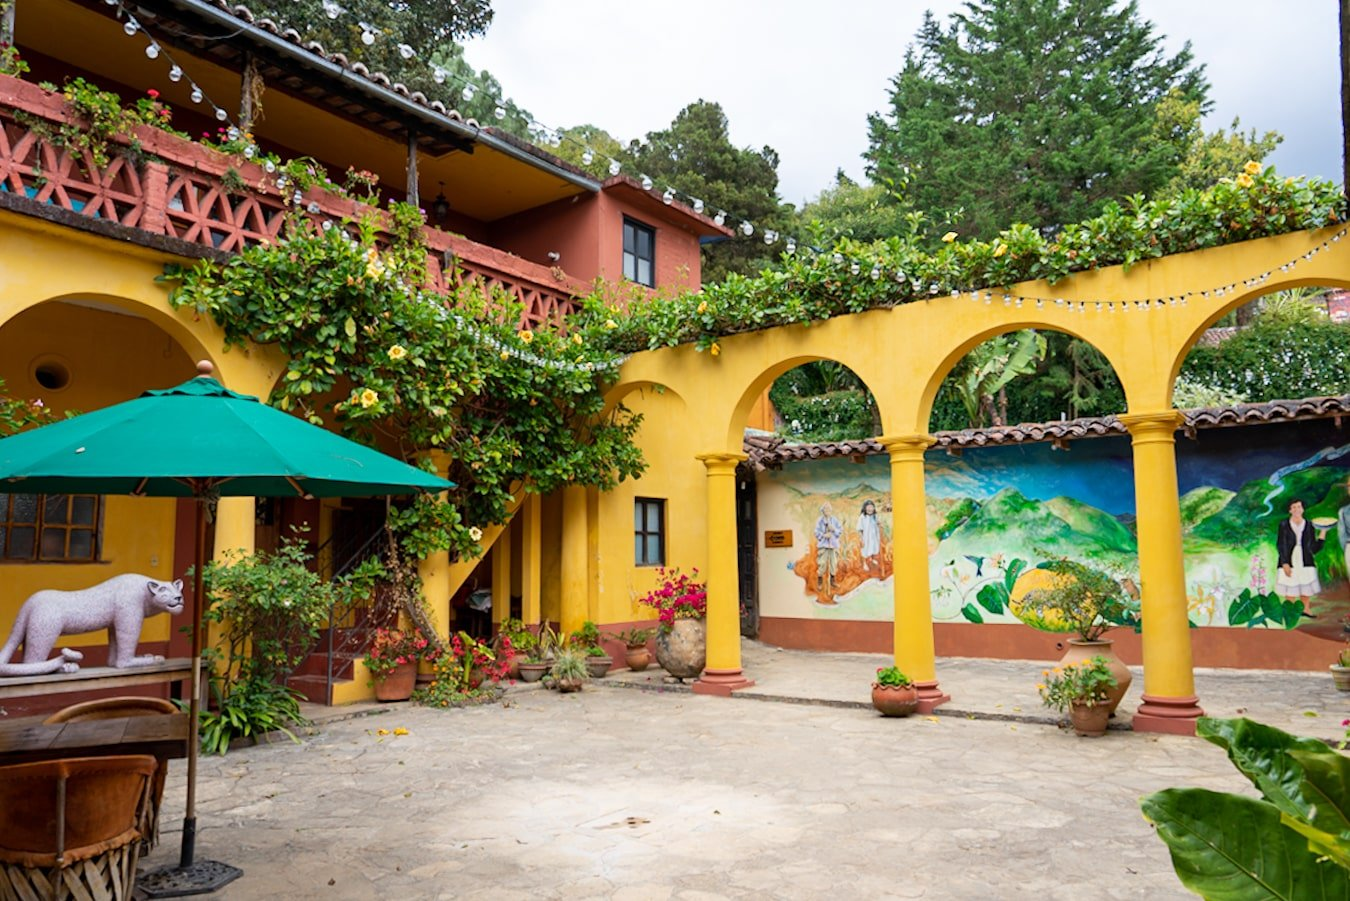 na bolom courtyard and hotel with painted mural and plants